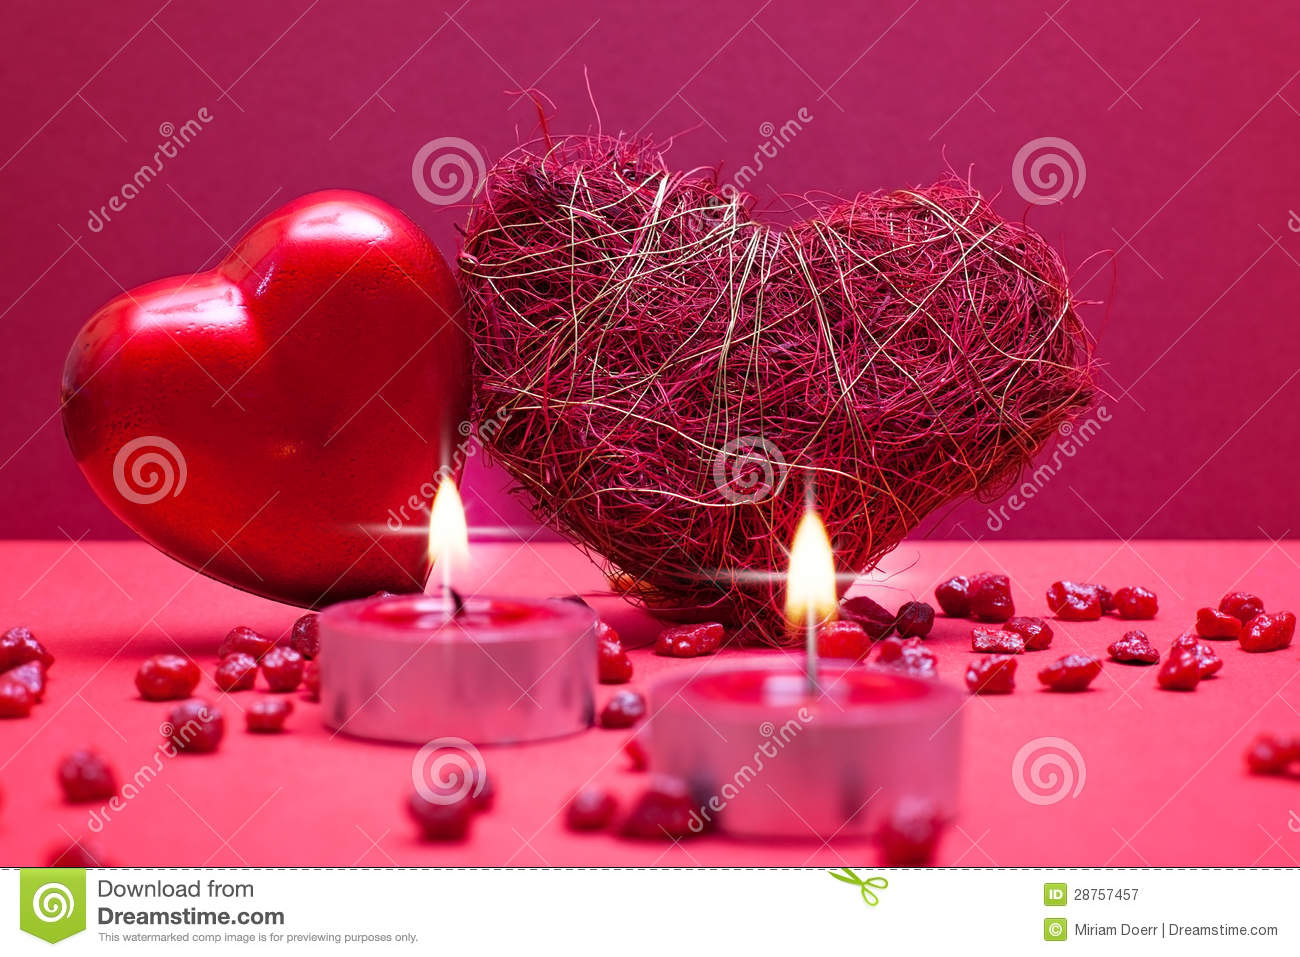 I Love U Hd Wallpapers Free Download Red Romantic Background With Hearts Royalty Free Stock